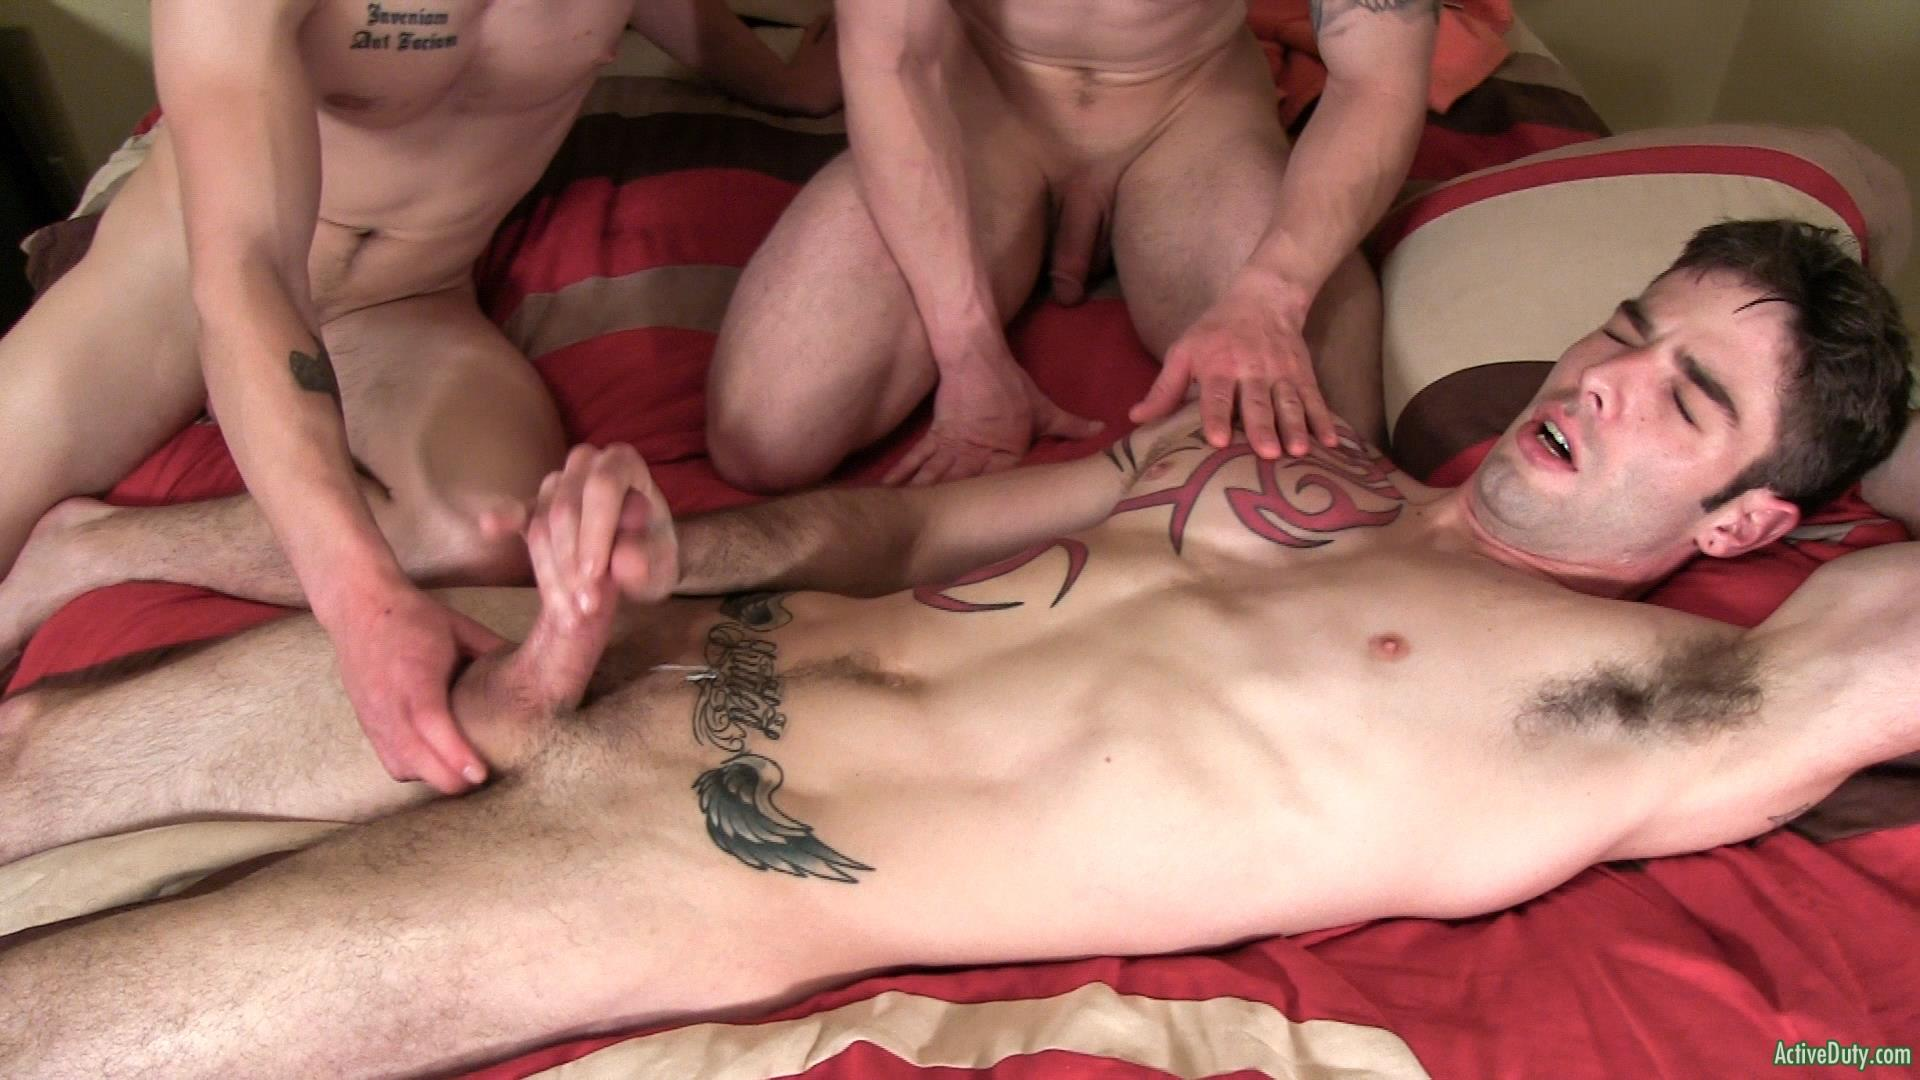 Active-Duty-Jake-Riley-Shea-Three-Straight-Army-Guys-Fucking-Hairy-Ass-Amateur-Gay-Porn-14 Three Way Army Buddy Hairy Ass Flip Flop Fucking